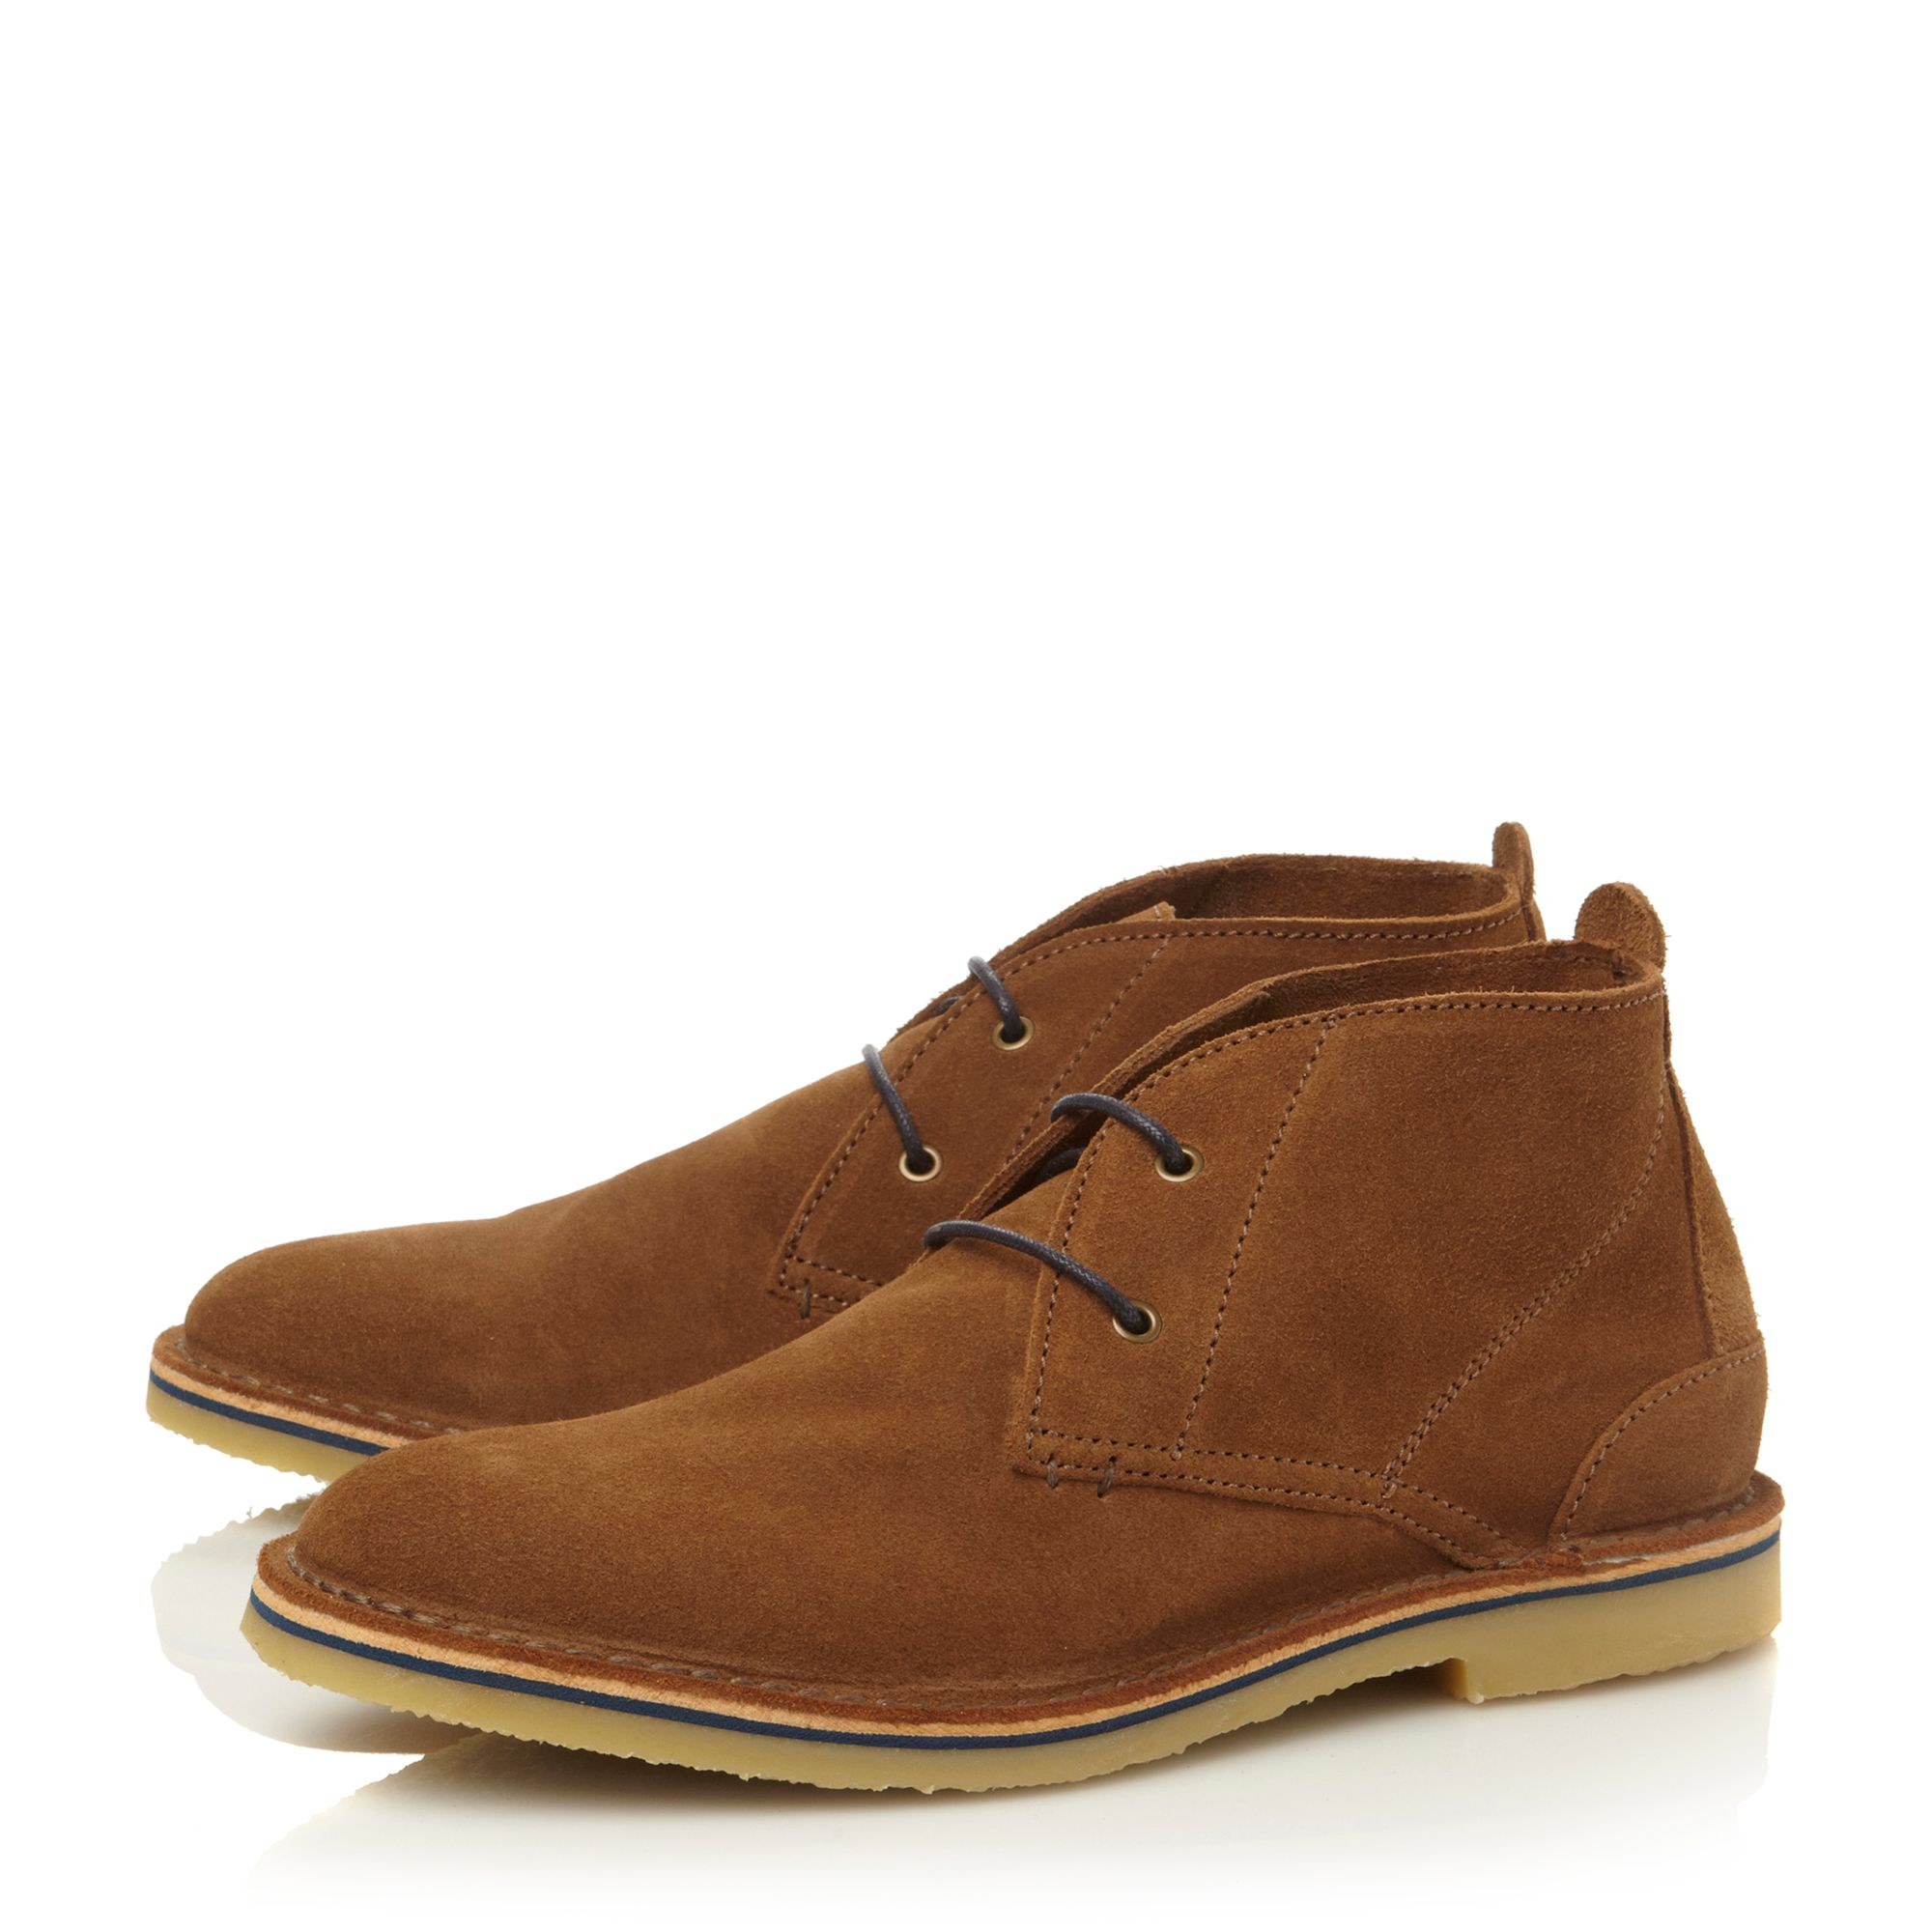 Cody colour pop lace up desert boots